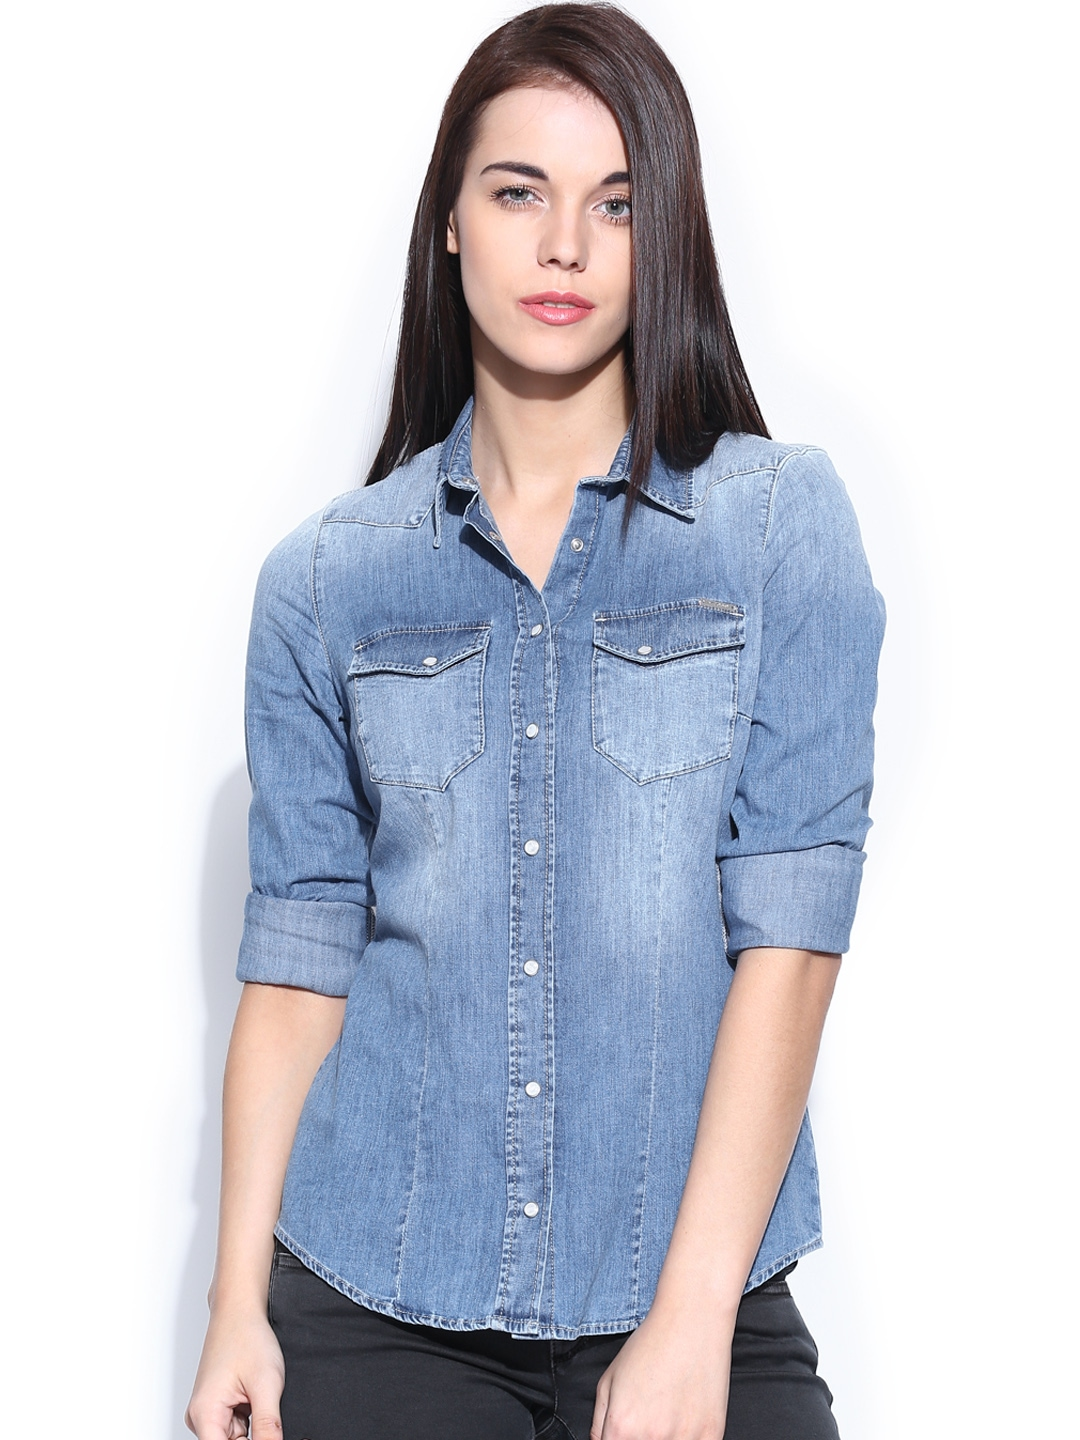 Harley davidson denim shirt - Compare Prices & Store Ratings at drinforftalpa.ml Deals · Top Brands · Comparison Shopping · Compare Prices.